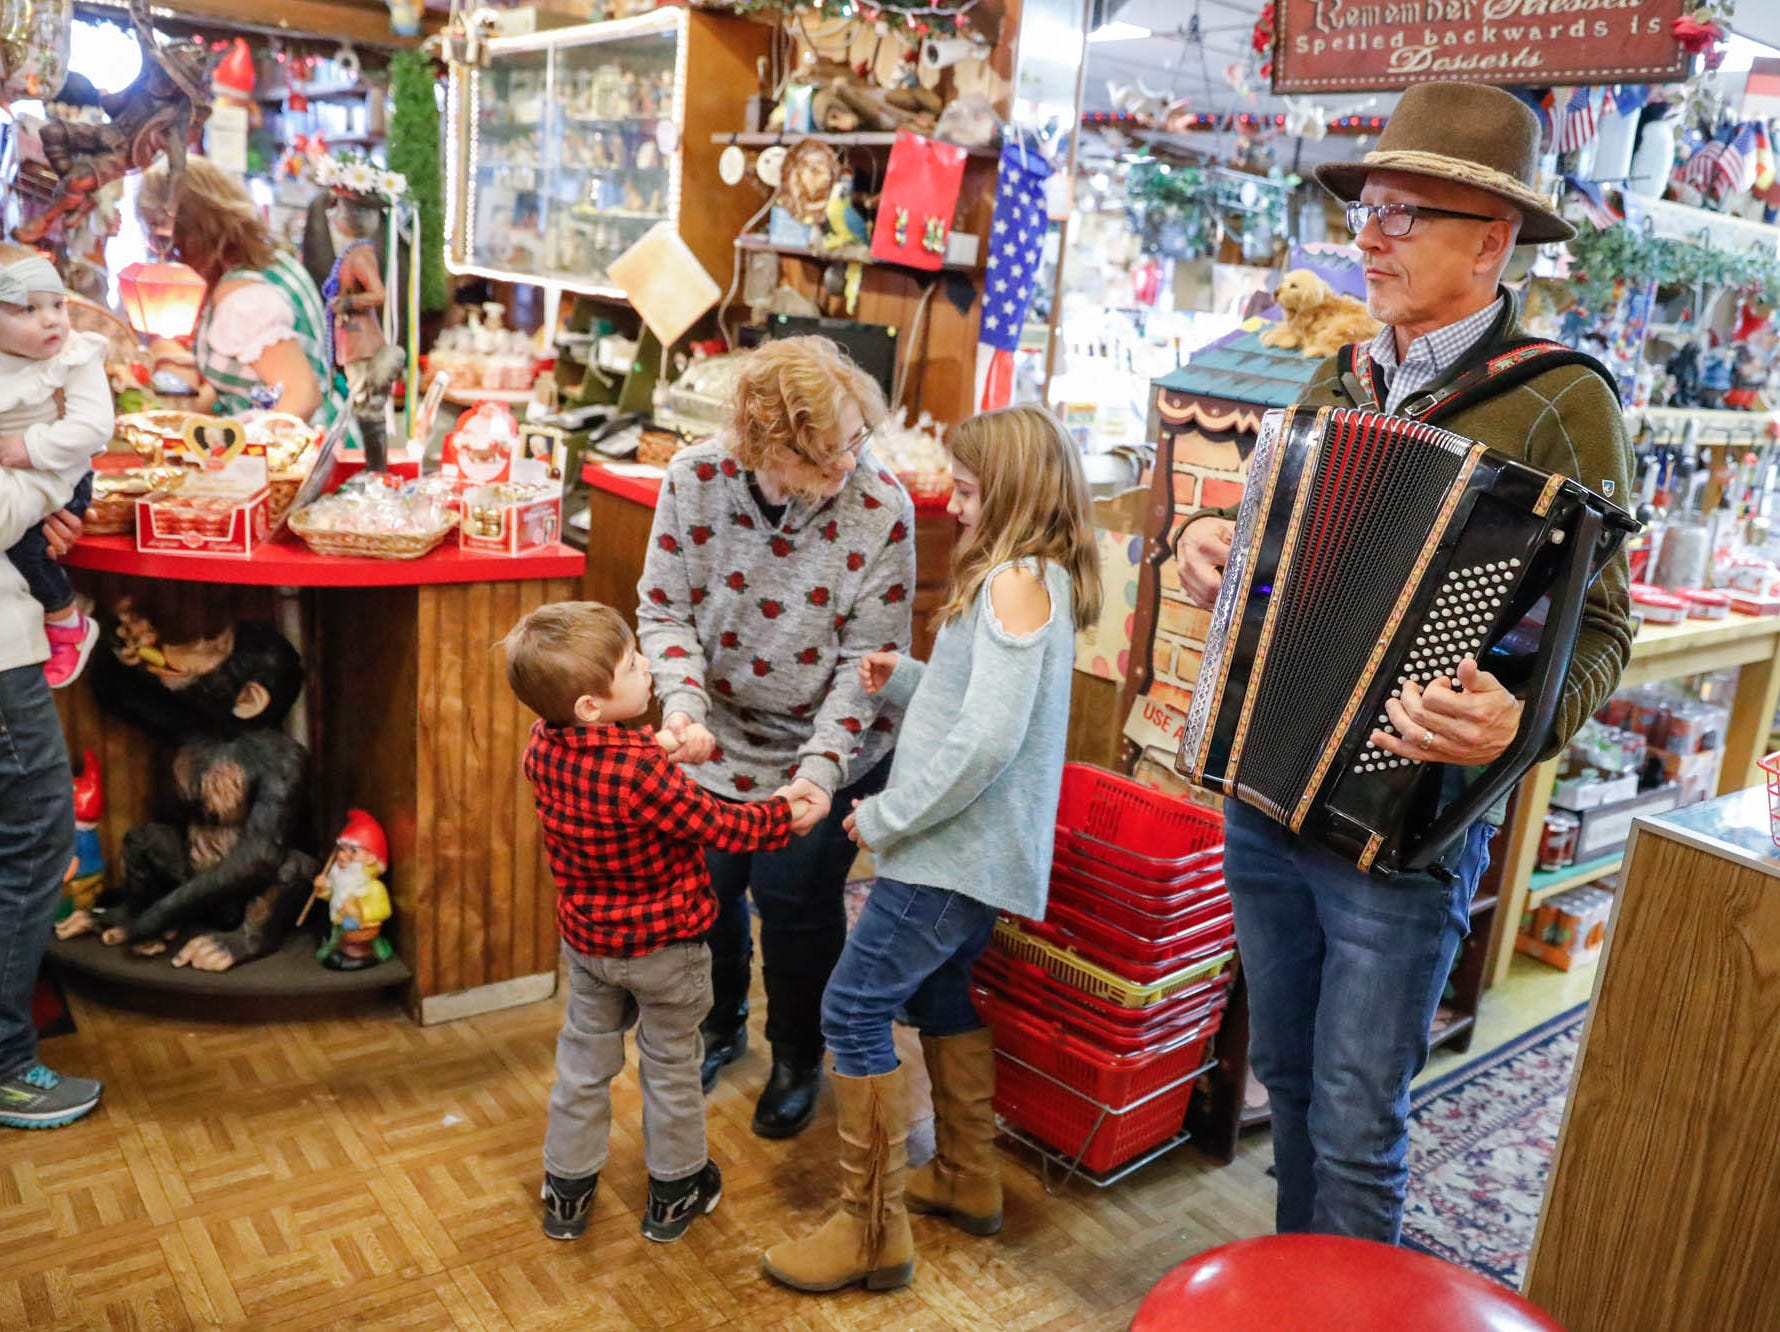 Heidelberg Haus Cafe and Bakery celebrates its 50th year in business with a party on Saturday, Dec. 8th, 2018. The cafe, bakery, and German grocery is well known for its extensive collection of German Kitsch.